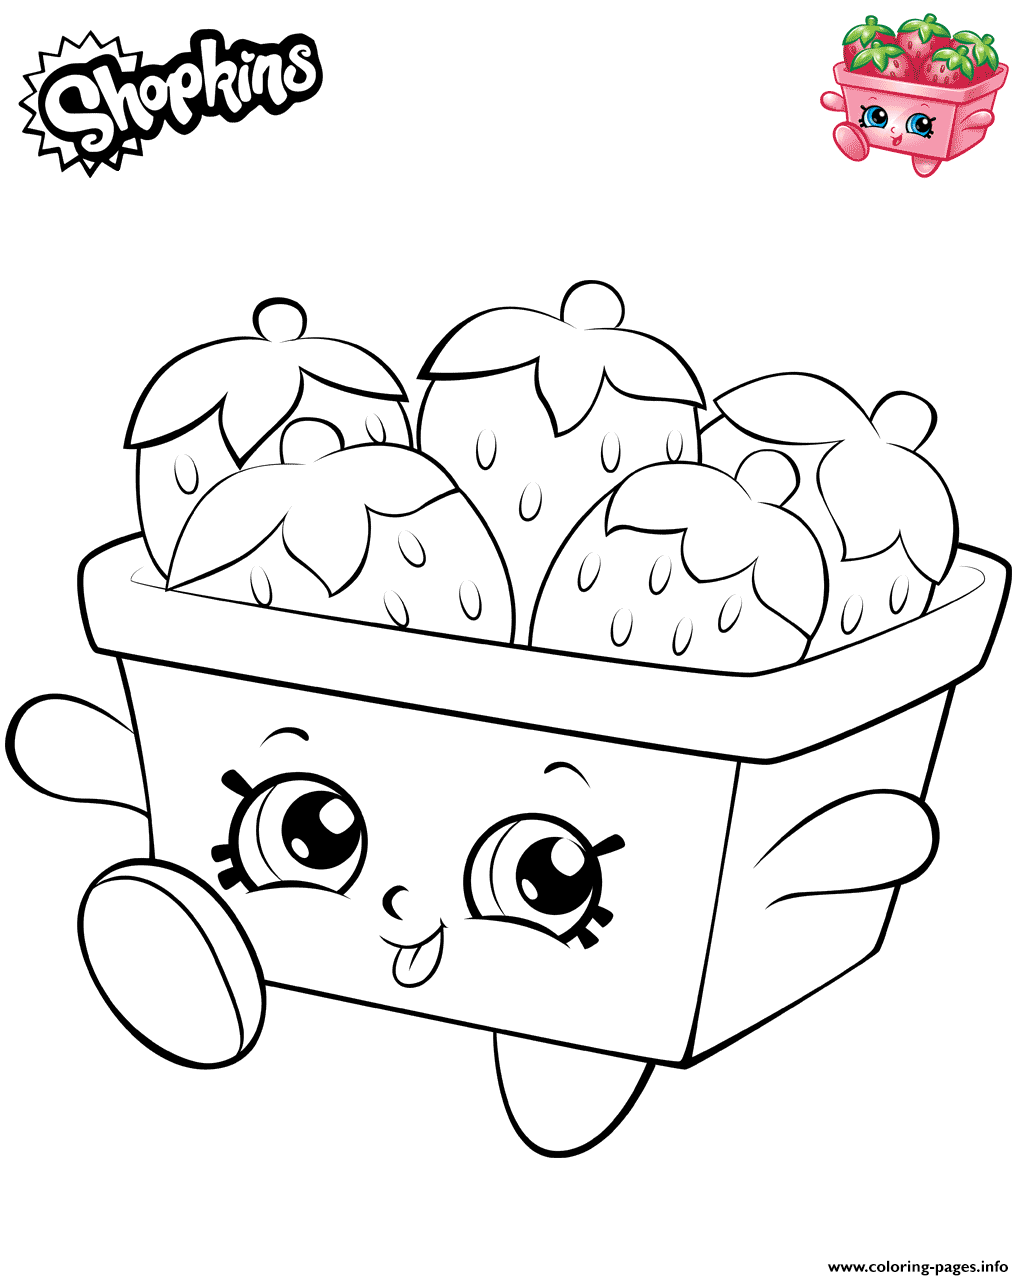 Strawberries Shopkins 2019 coloring pages